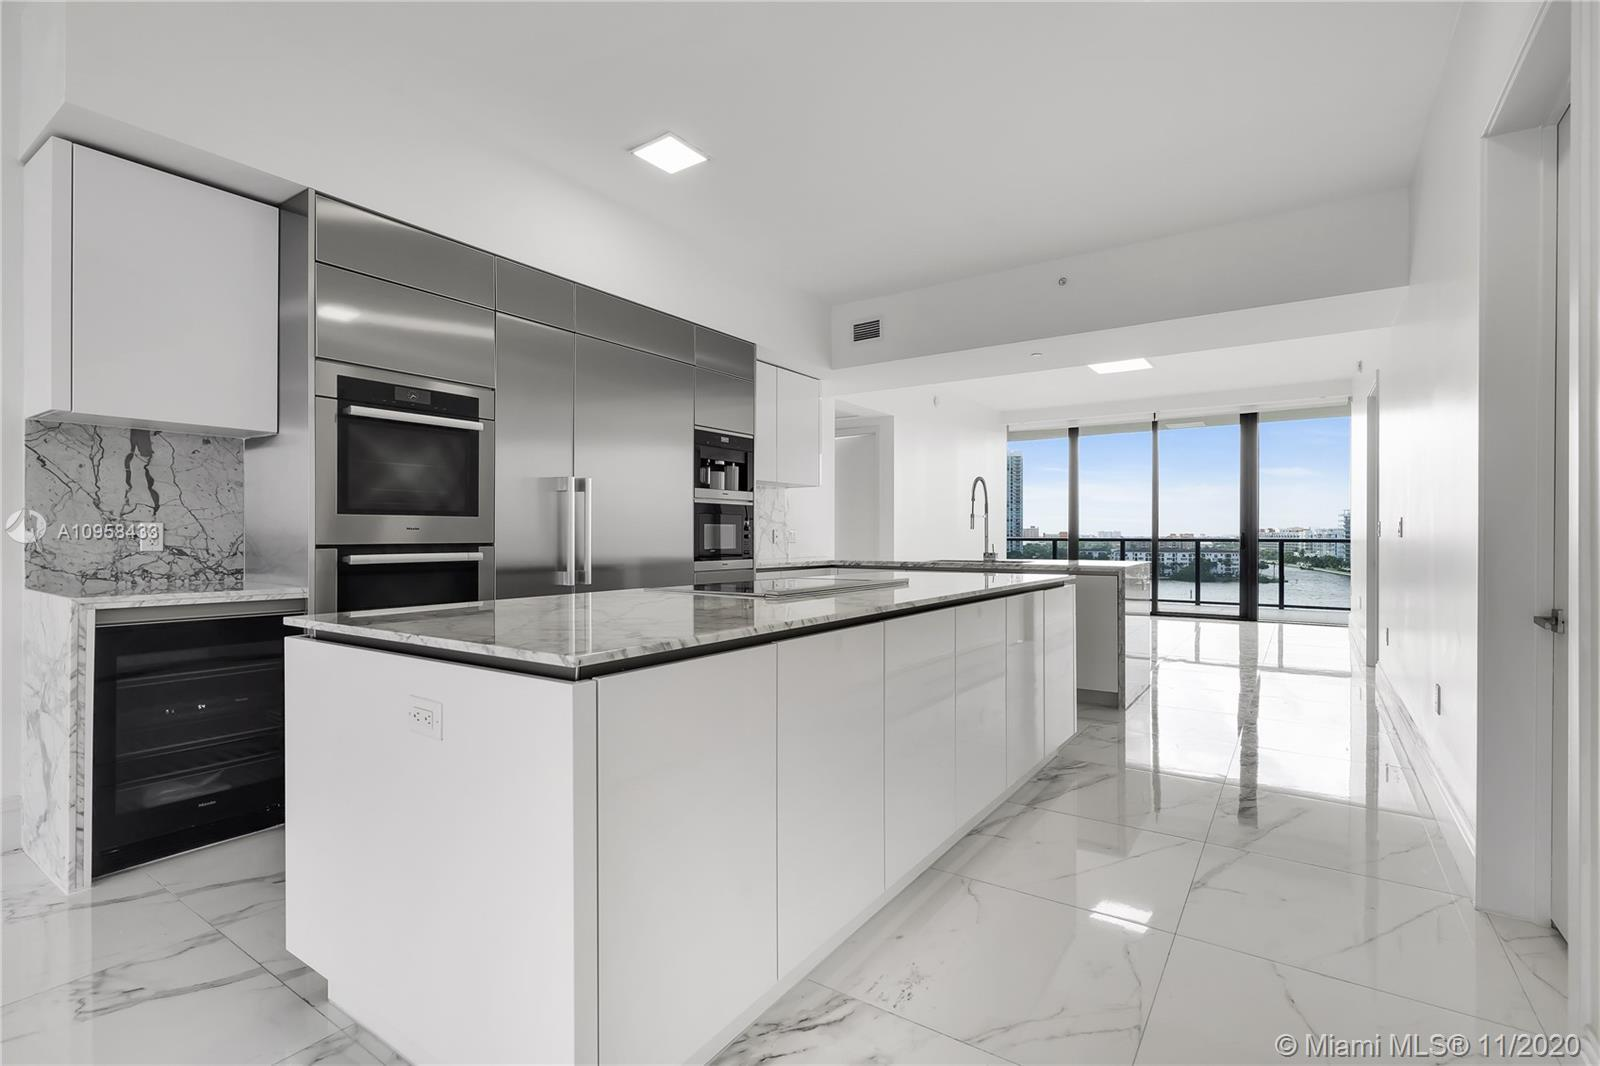 Named the #1 Residential Real Estate Development in South Florida by Elite Traveler, Privé provides